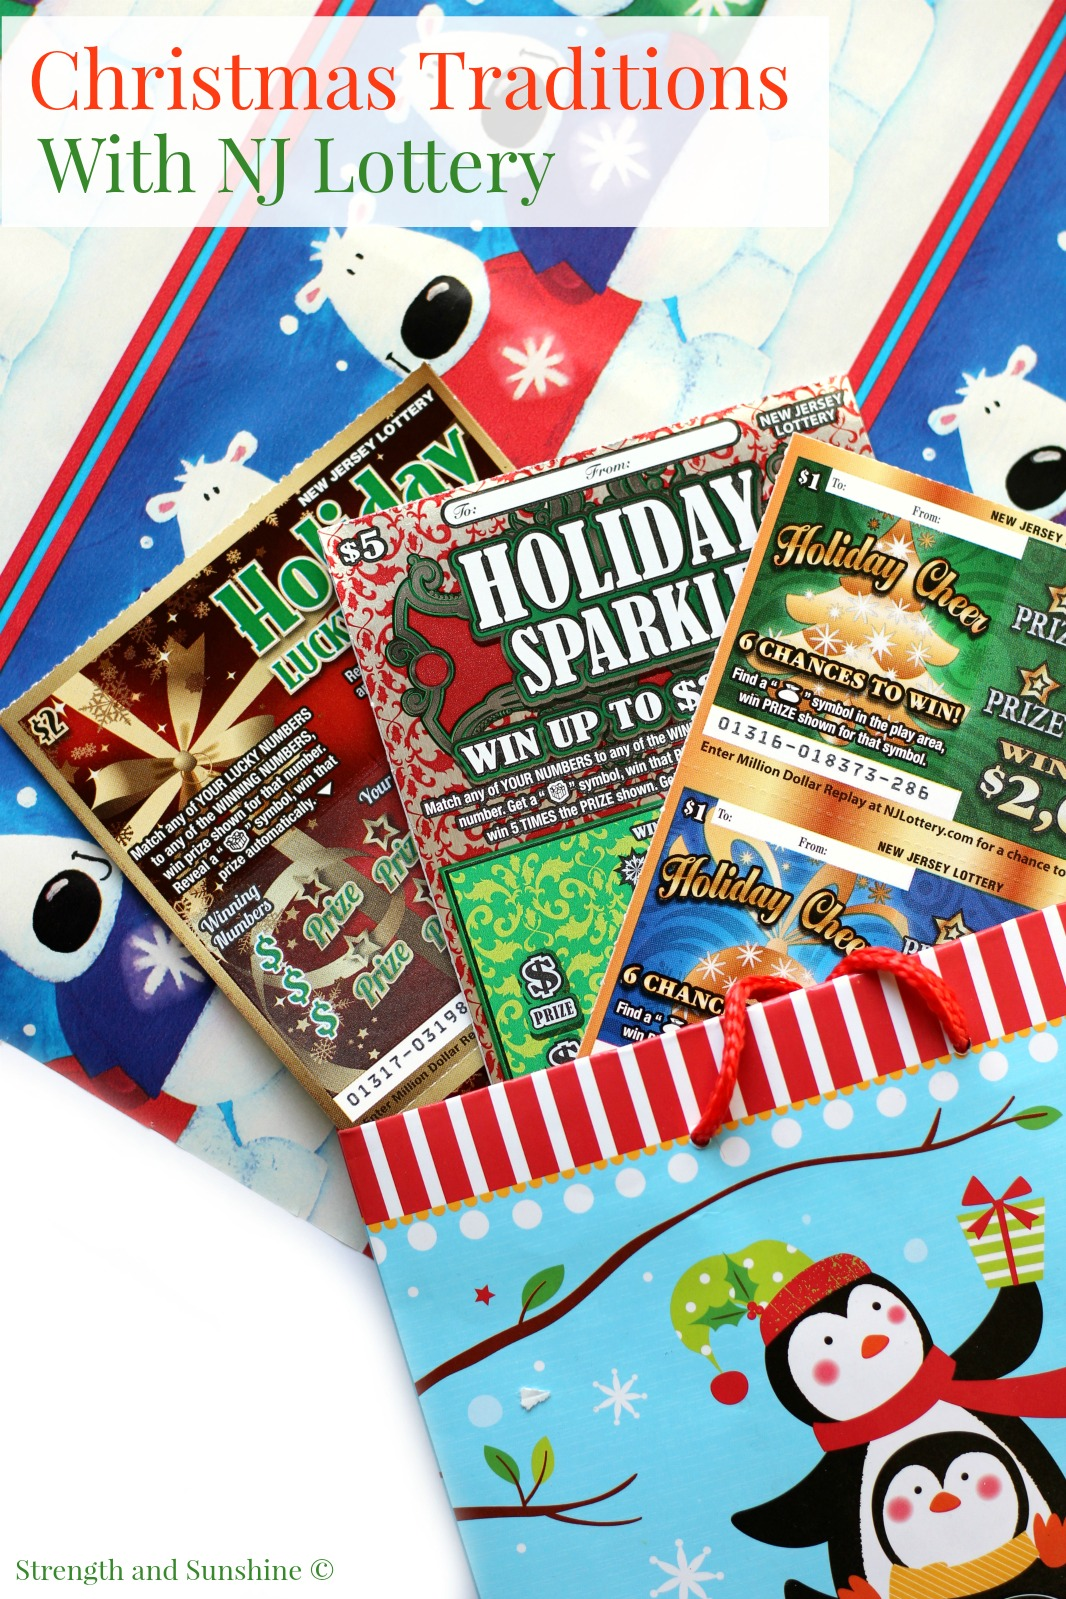 Christmas Traditions With NJ Lottery | Strength and Sunshine @RebeccaGF666 @NewJerseyLottery and #NewJerseyLottery #NJLotteryHoliday